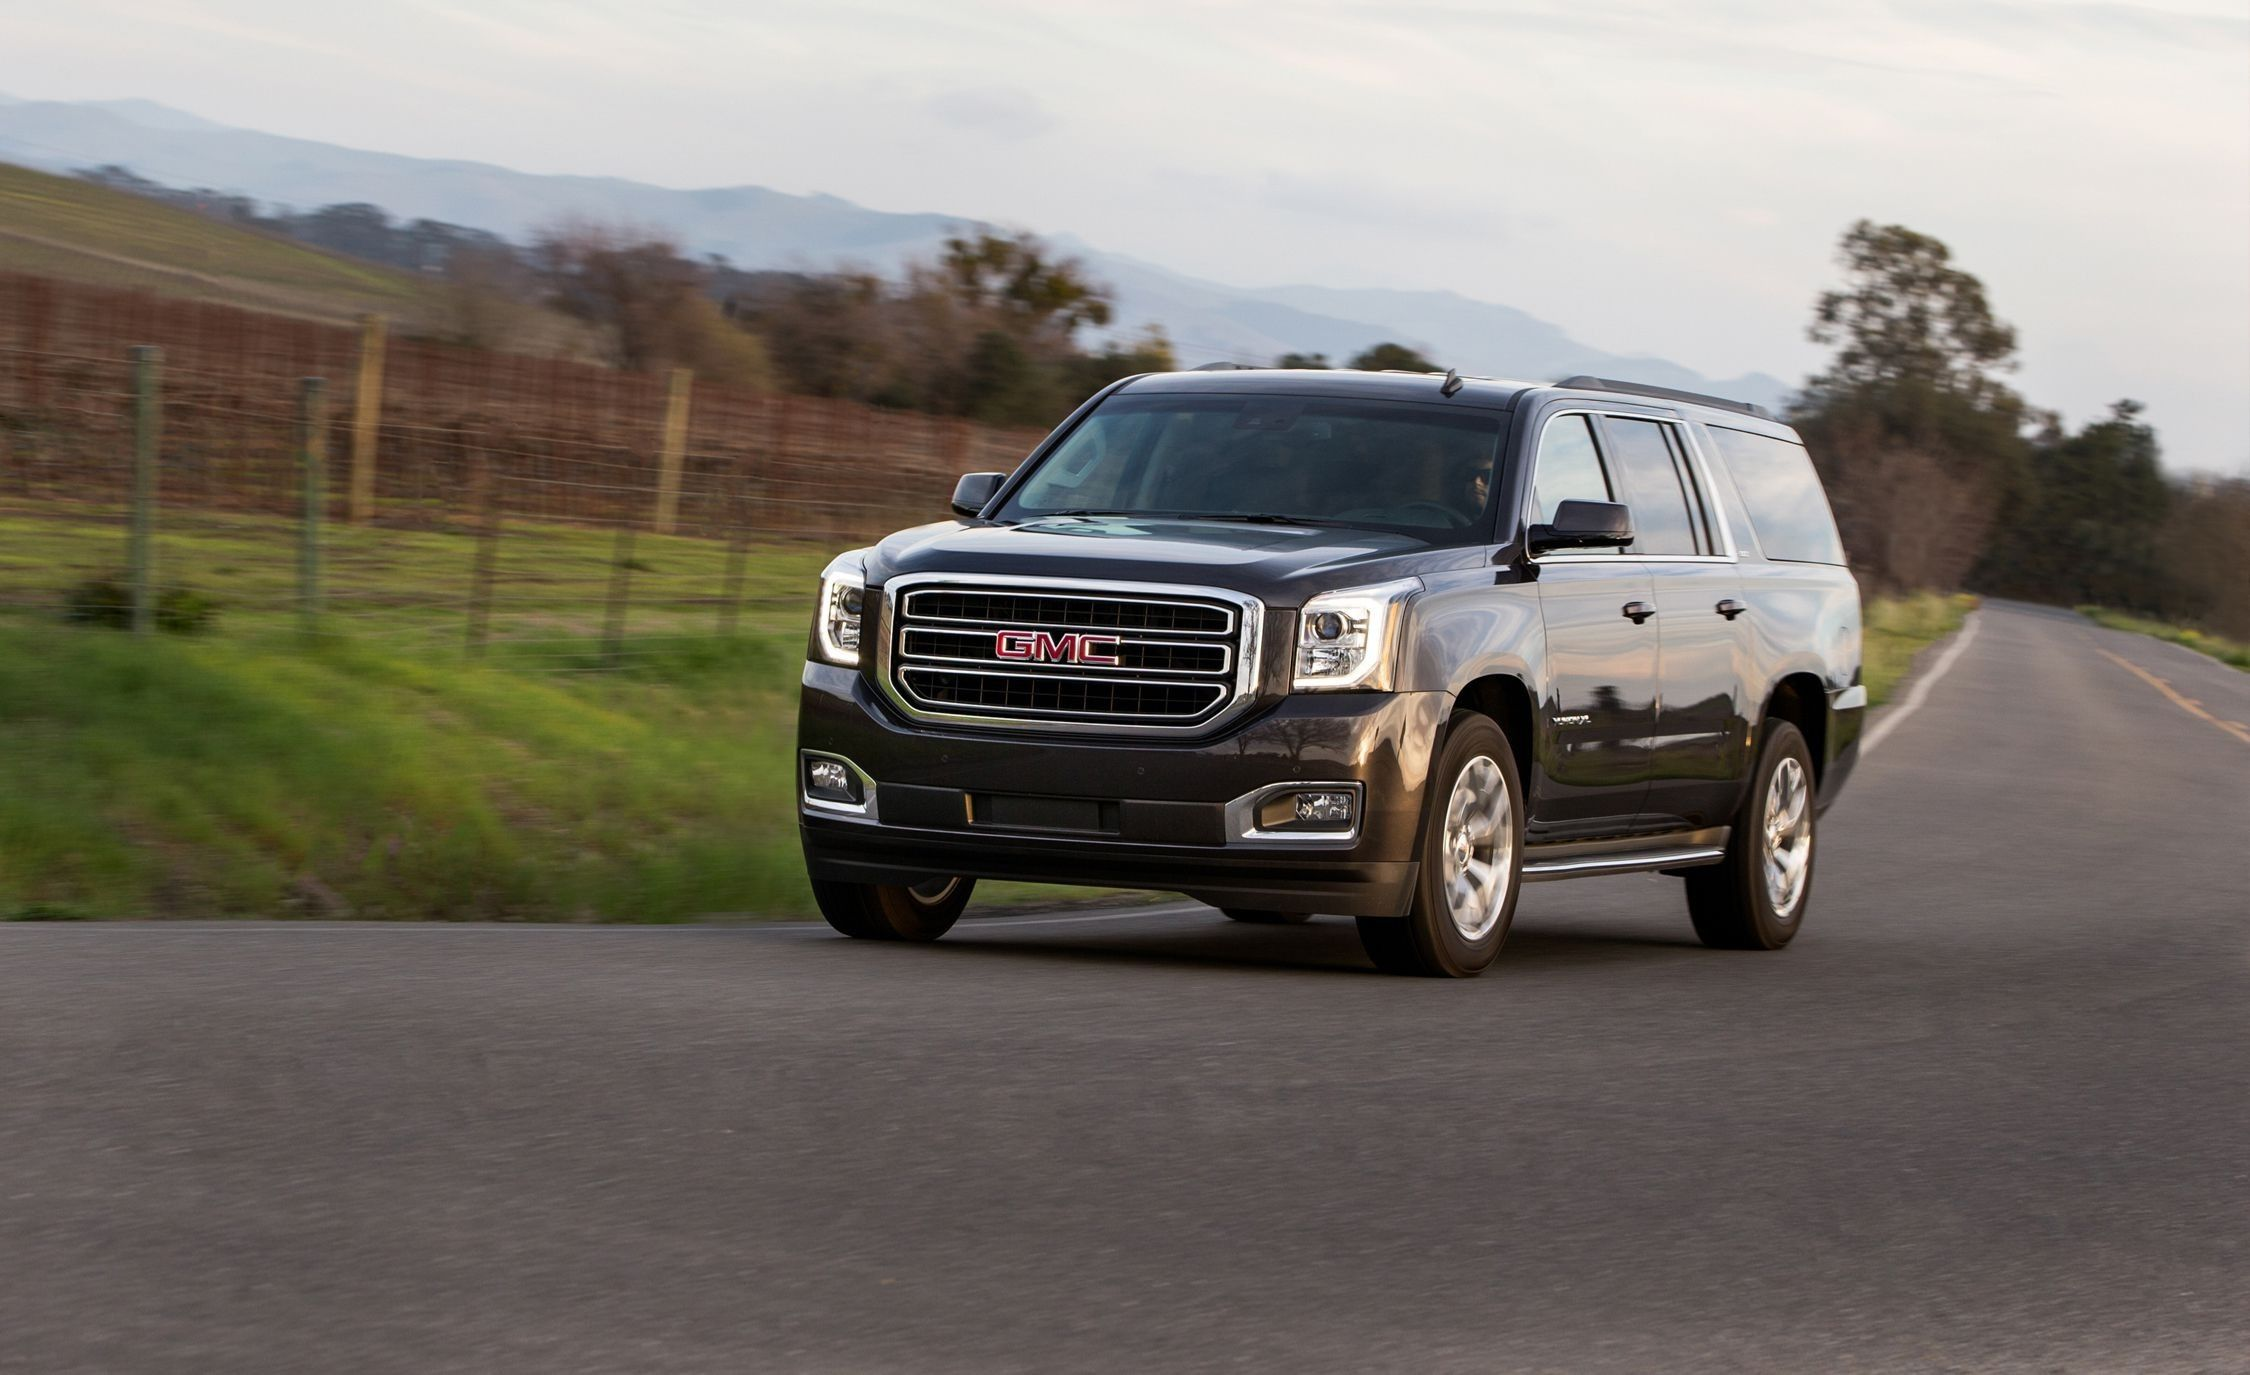 2019 Gmc Yukon Towing Capacity Review Specs And Release Date